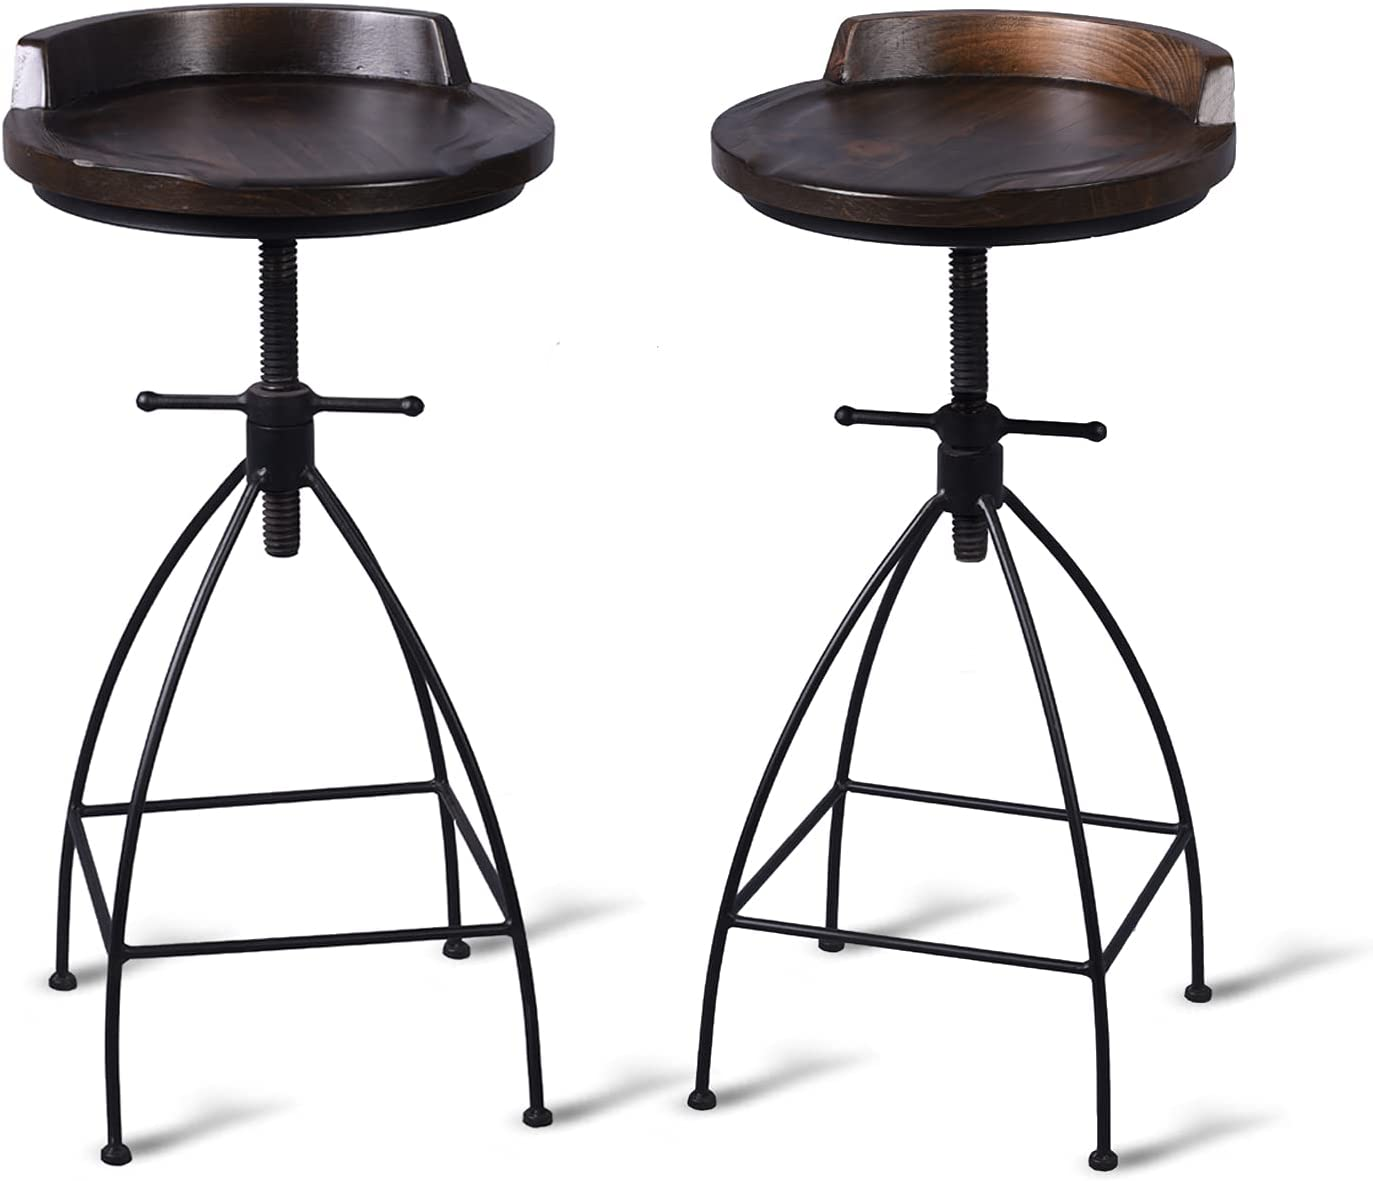 Diwhy Industrial Vintage Rustic Bar Stool,Wooden Top Stool Kitchen Counter Height Adjustable,Iron Stoo,Swivel Stool,24 Inch,Low Backrest,Hump Surface,Fully Welded Set of 2 (Walnut Color Wooden Top)